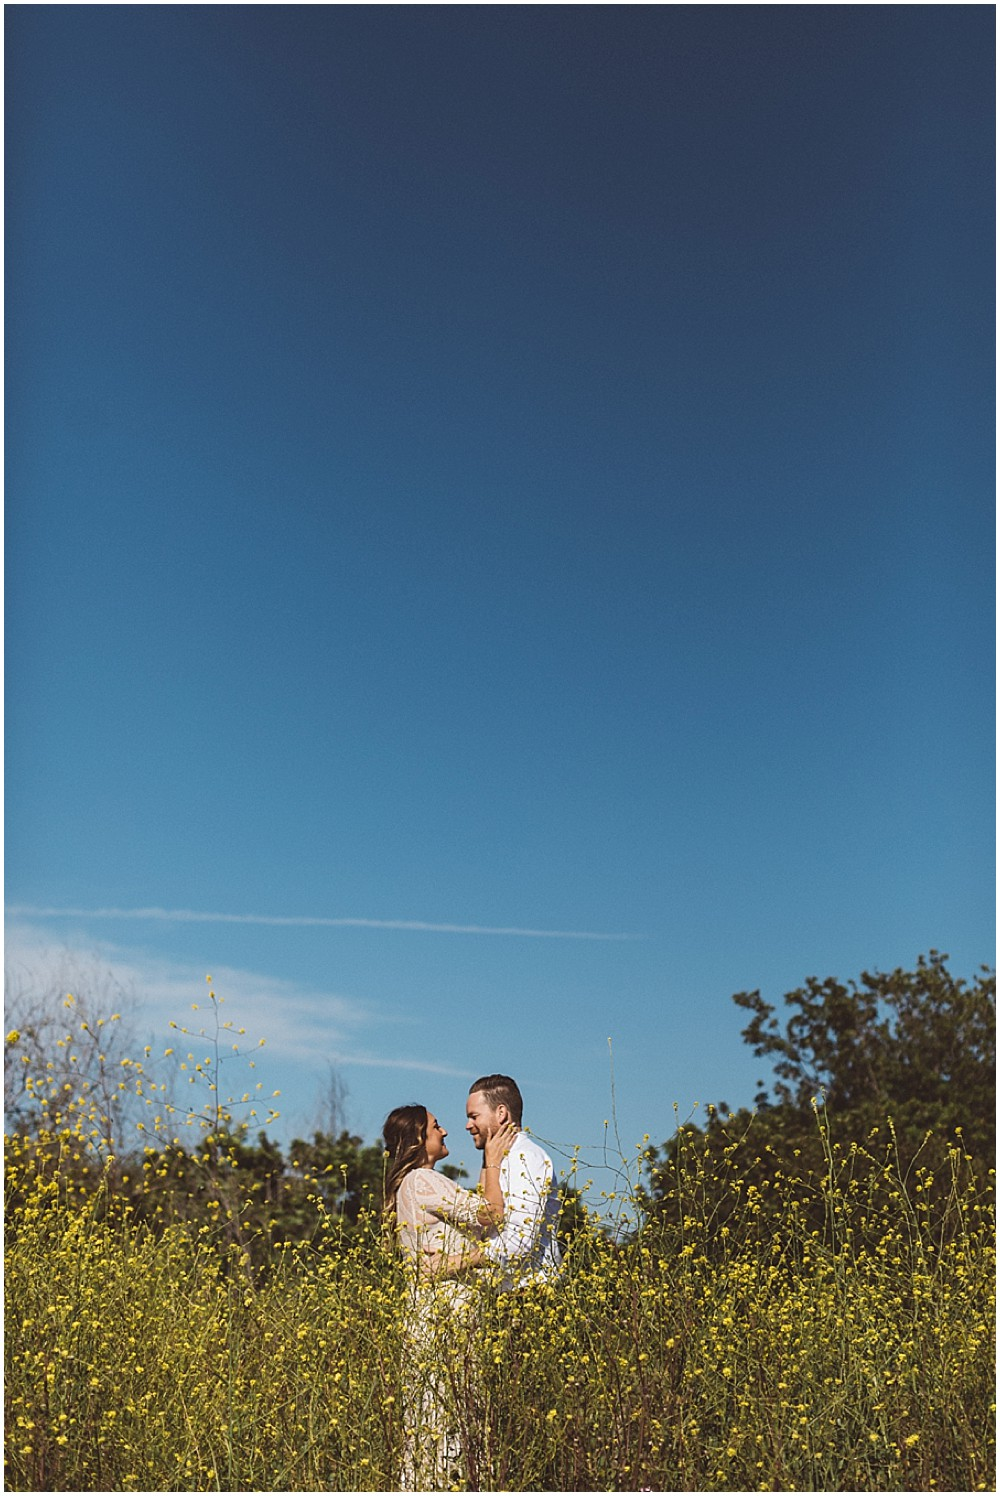 Robert+Ashley_stevecowellphoto_0010.jpg